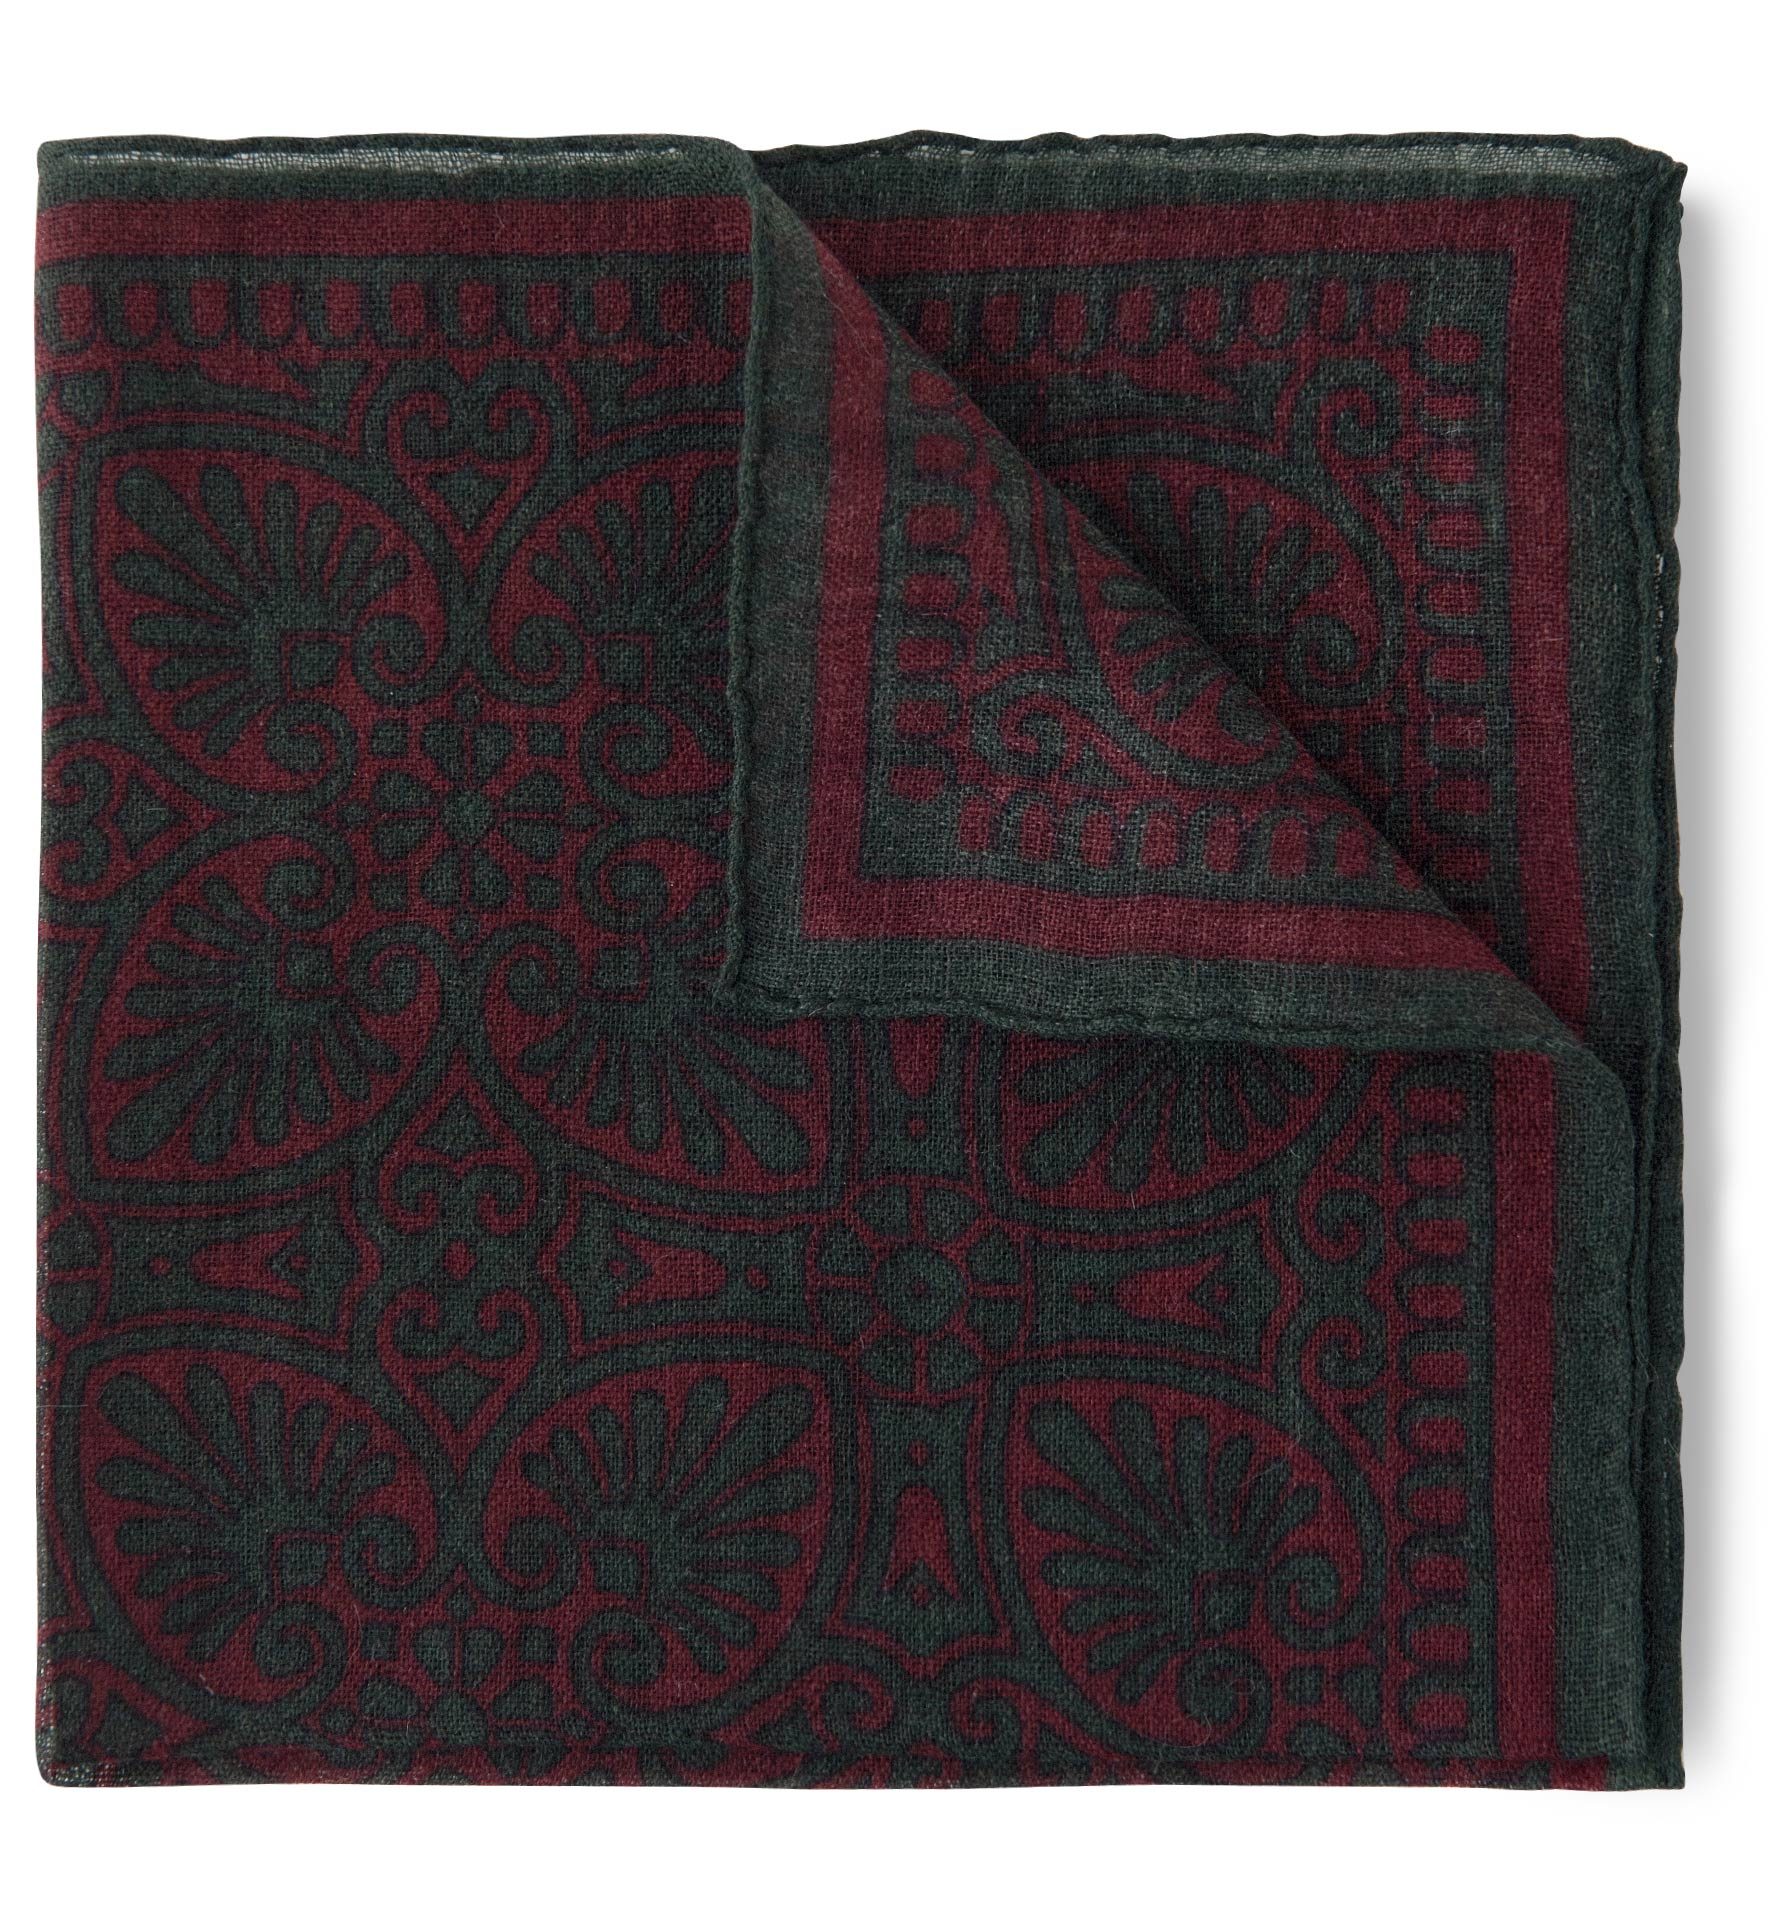 Zoom Image of Faded Scarlet and Green Paisley Pocket Square